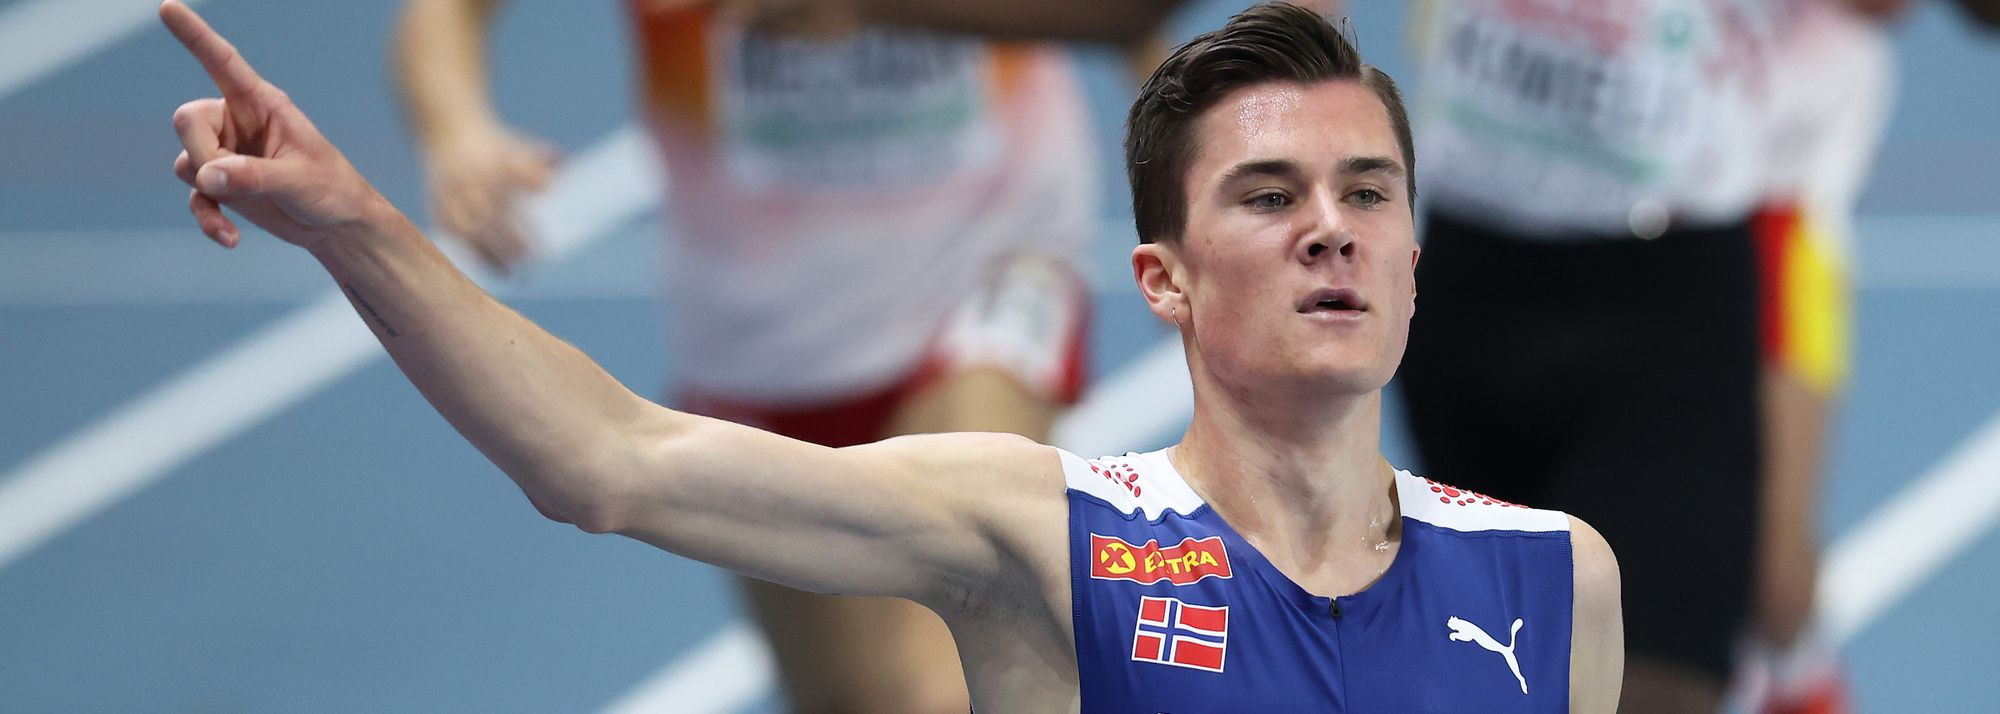 Four world leads among the highlight on the final final day of the 2021 European Indoor Championships in Torun.